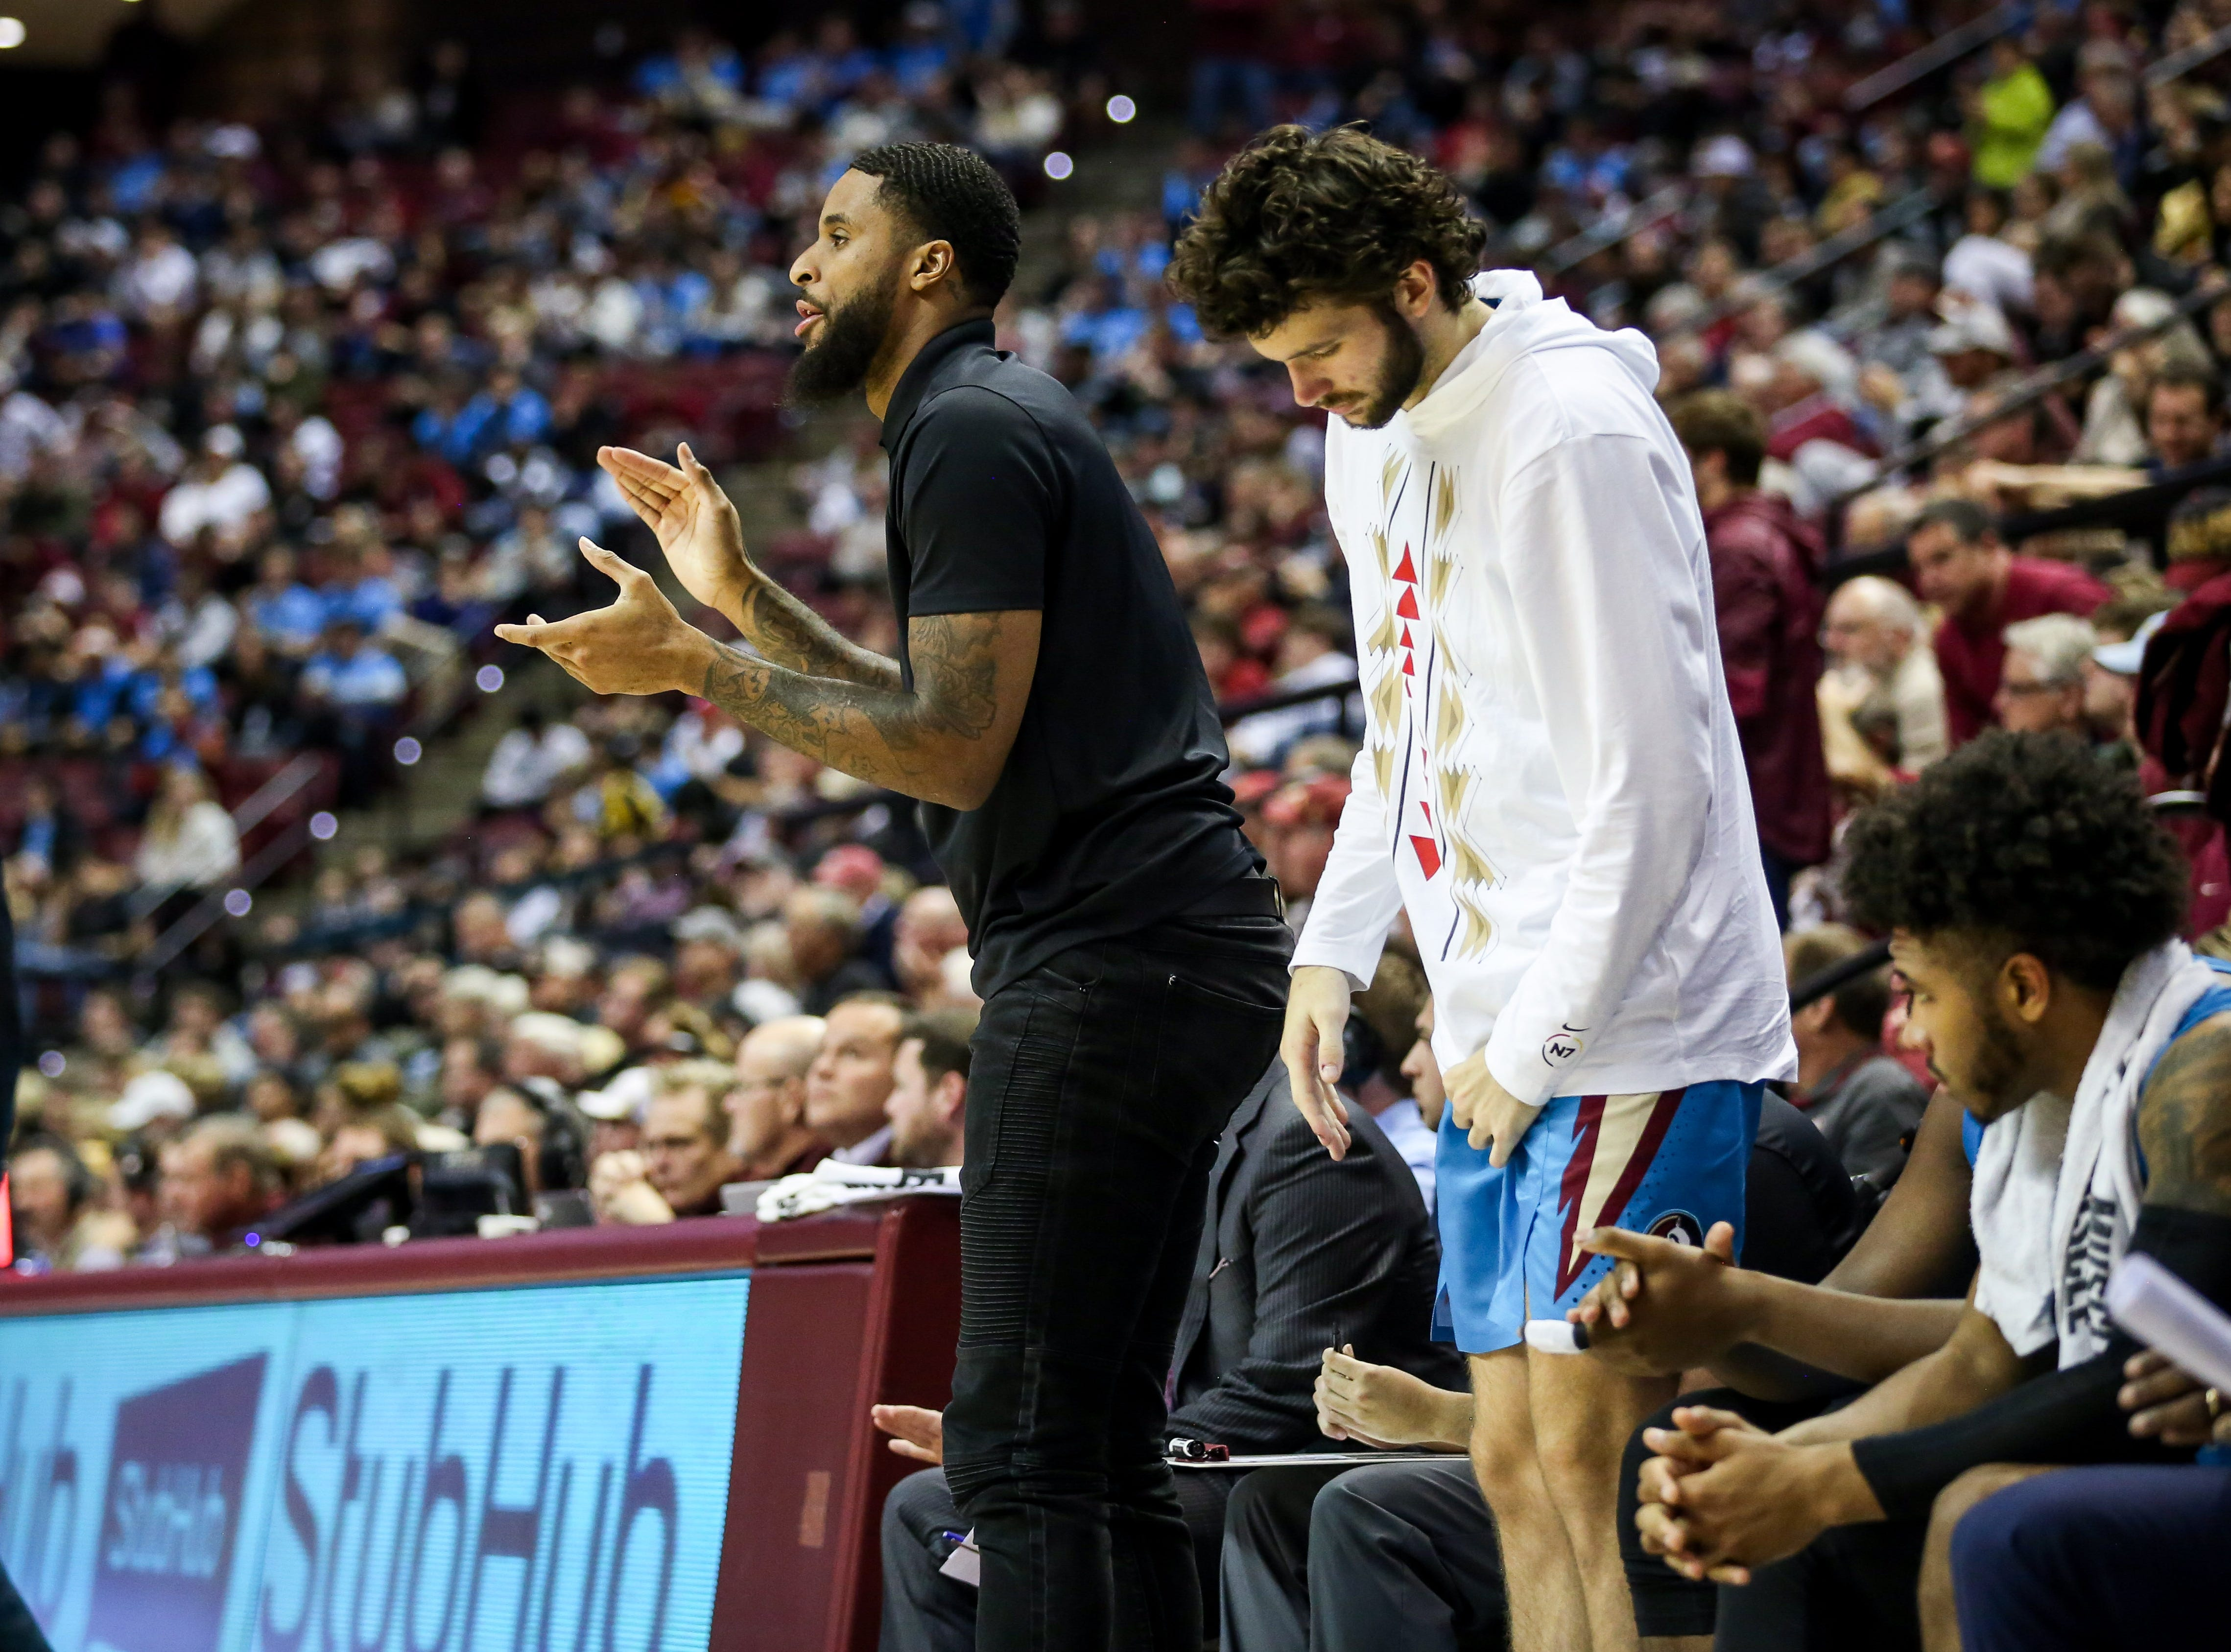 Injured Senior Forward, Phil Cofer, was in attendance cheering on his teammates against Purdue on Wednesday, November 28th.